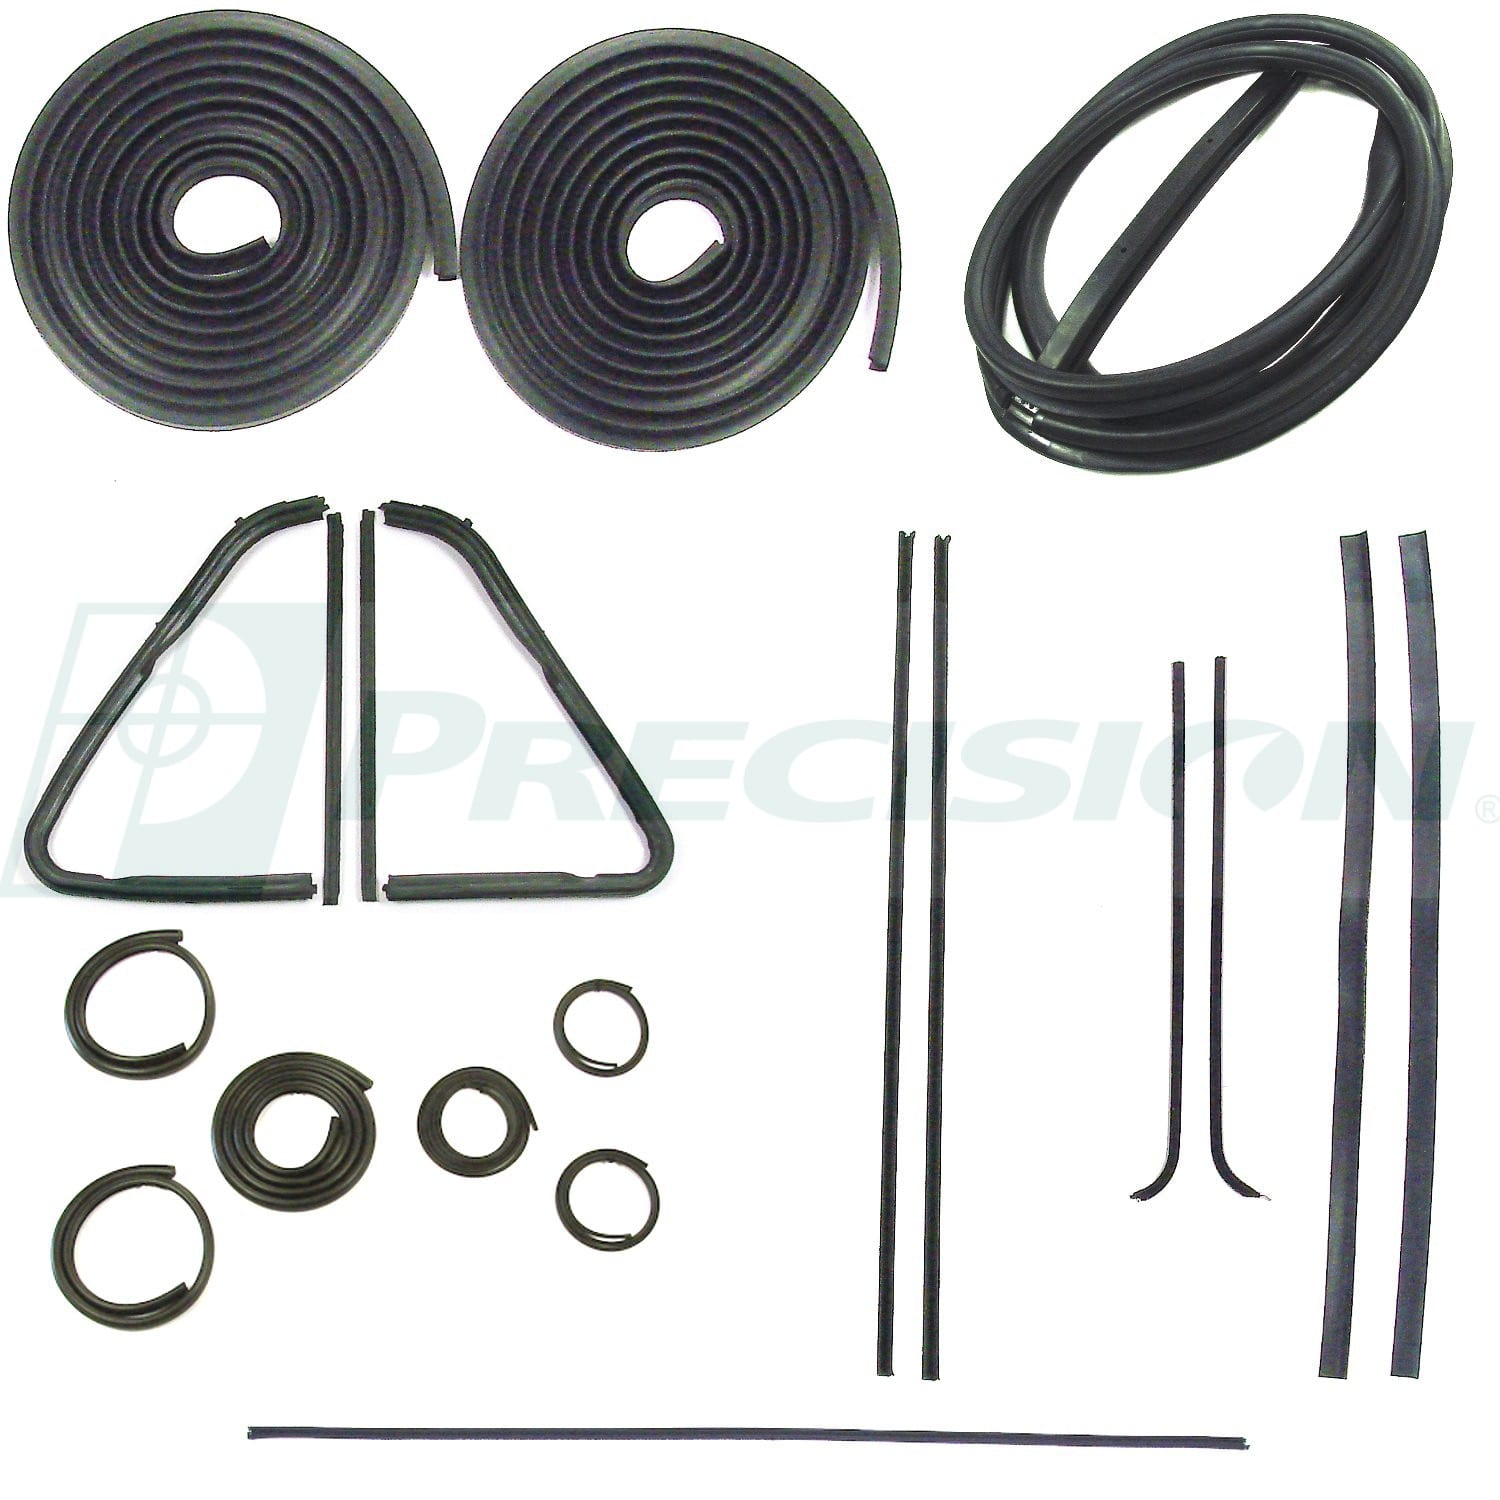 1951-1953 GM Pickup Weatherstrip Kit w/o Windshield Trim Groove